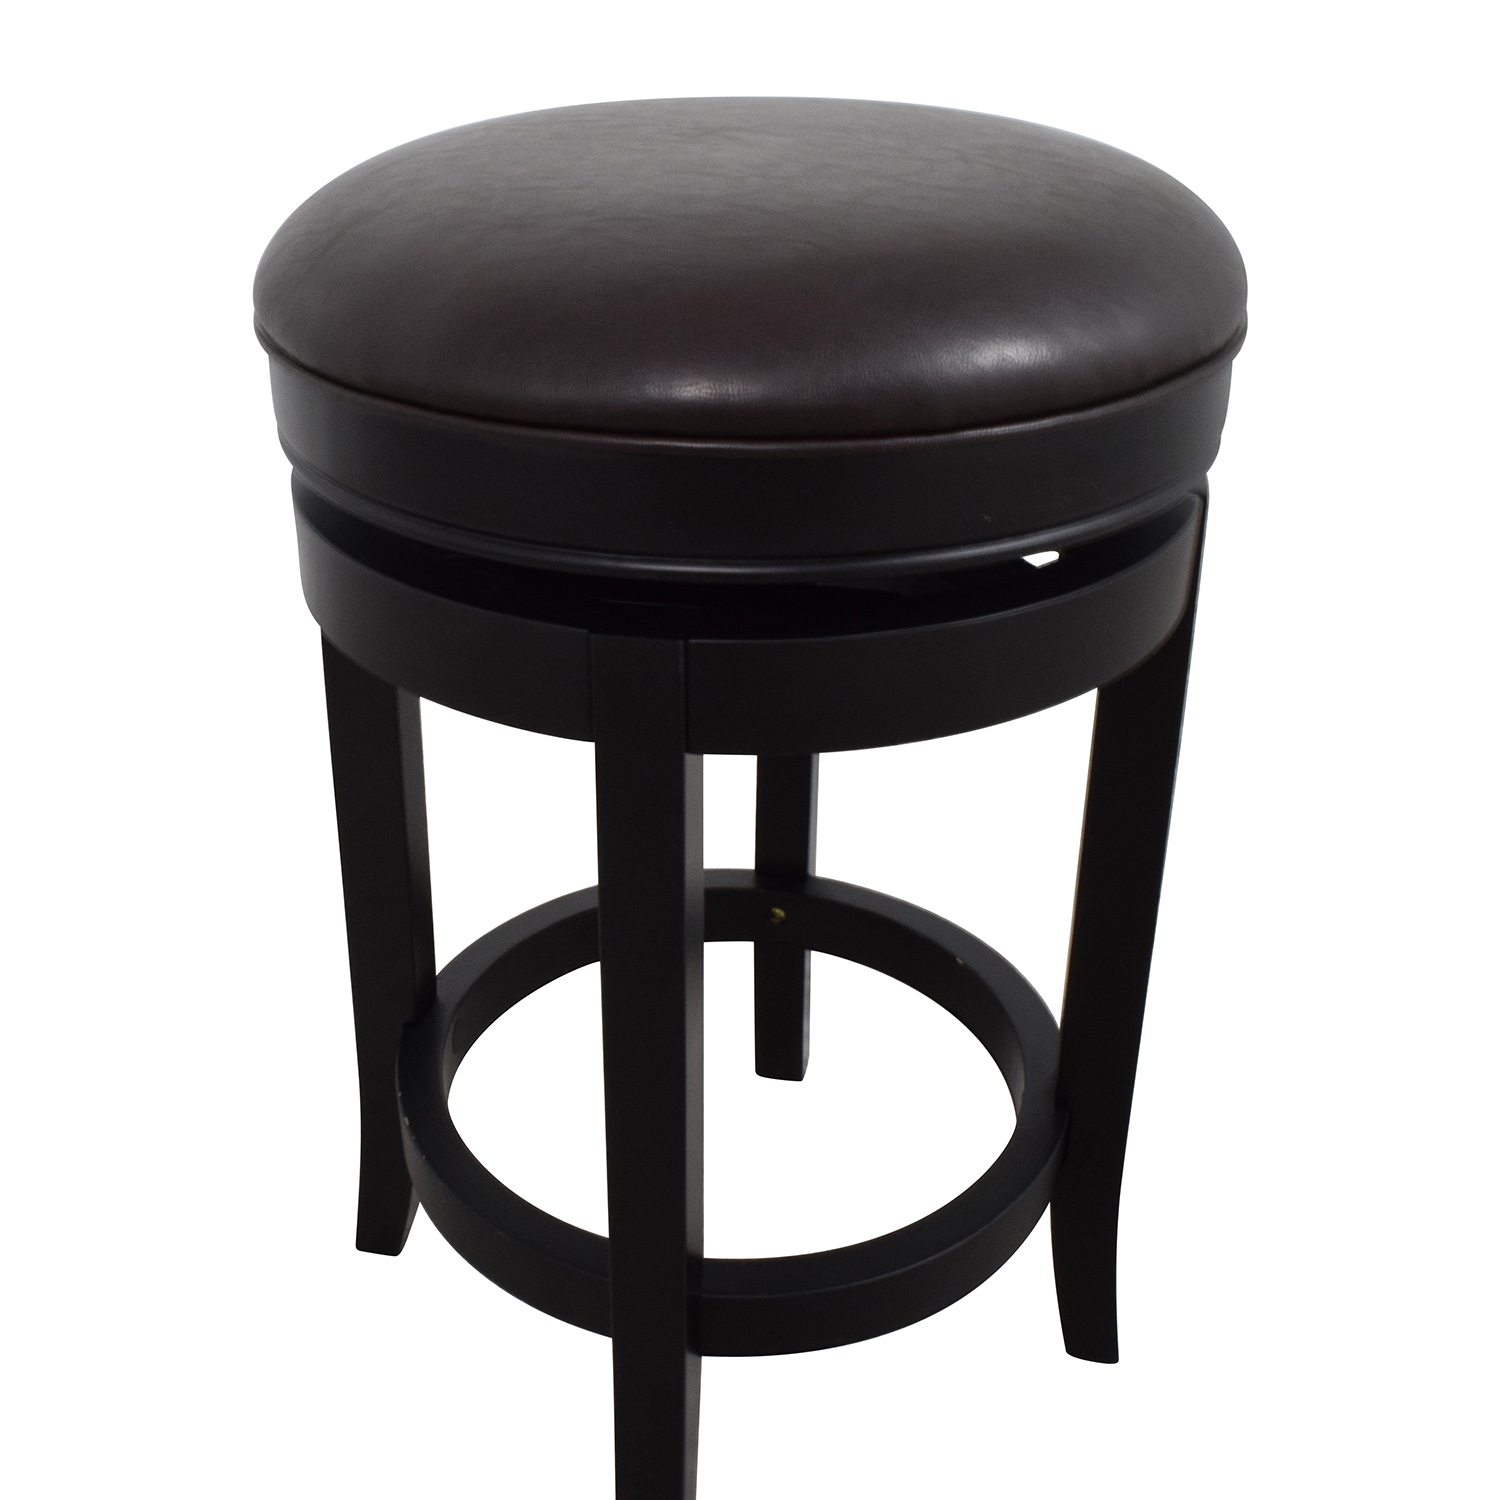 90 Off Inmod Inmod Cedric Round Backless Bar Stool Chairs